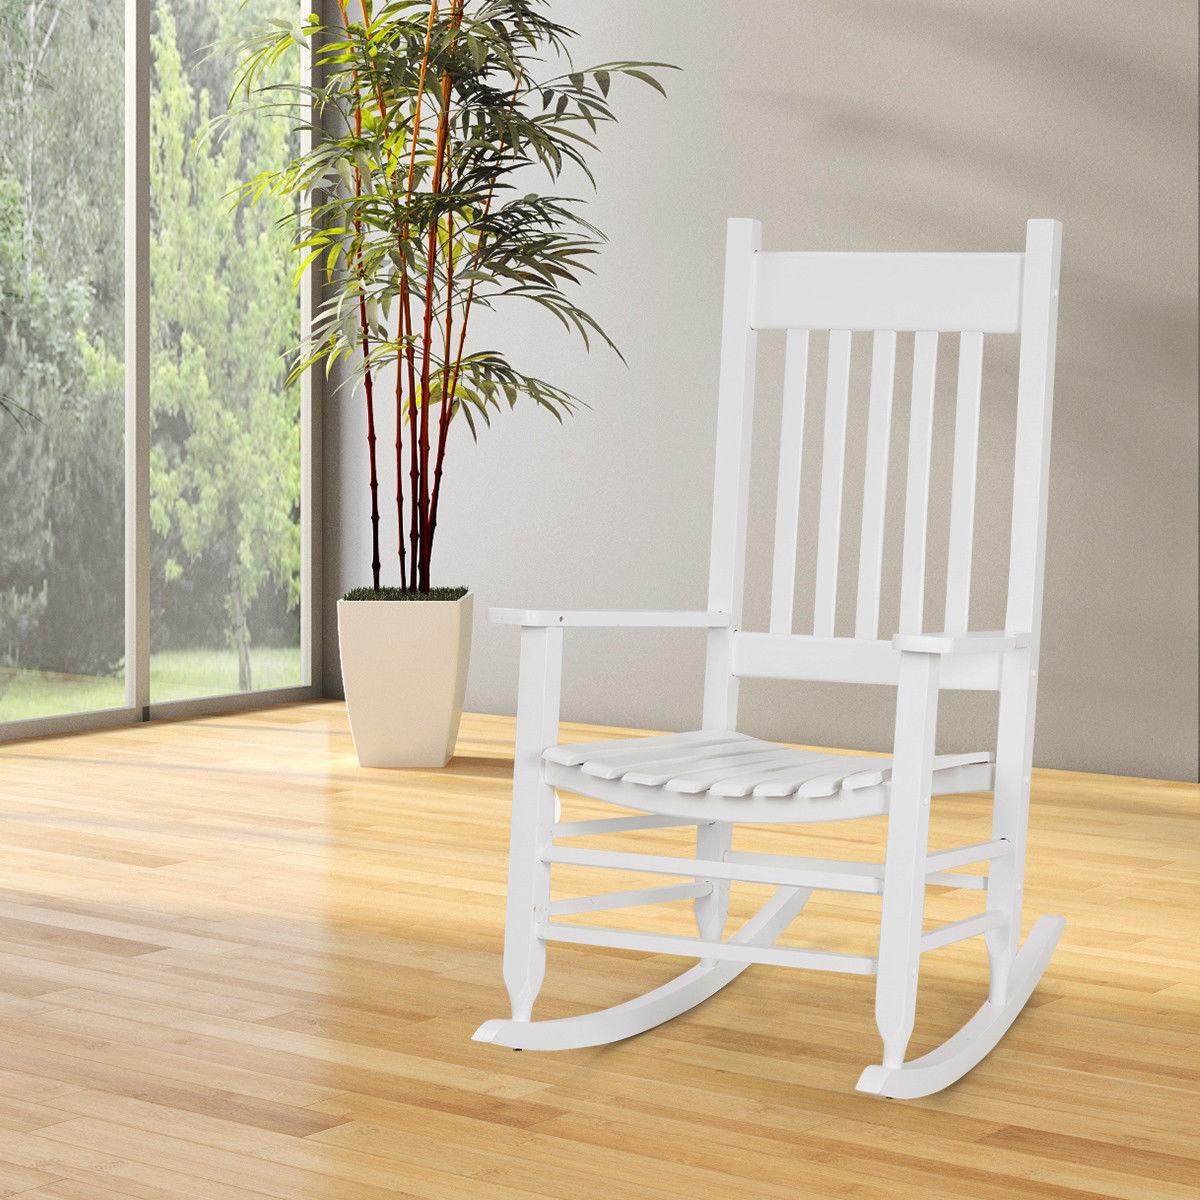 Solid Wood Chair Porch Deck Patio Backyard White